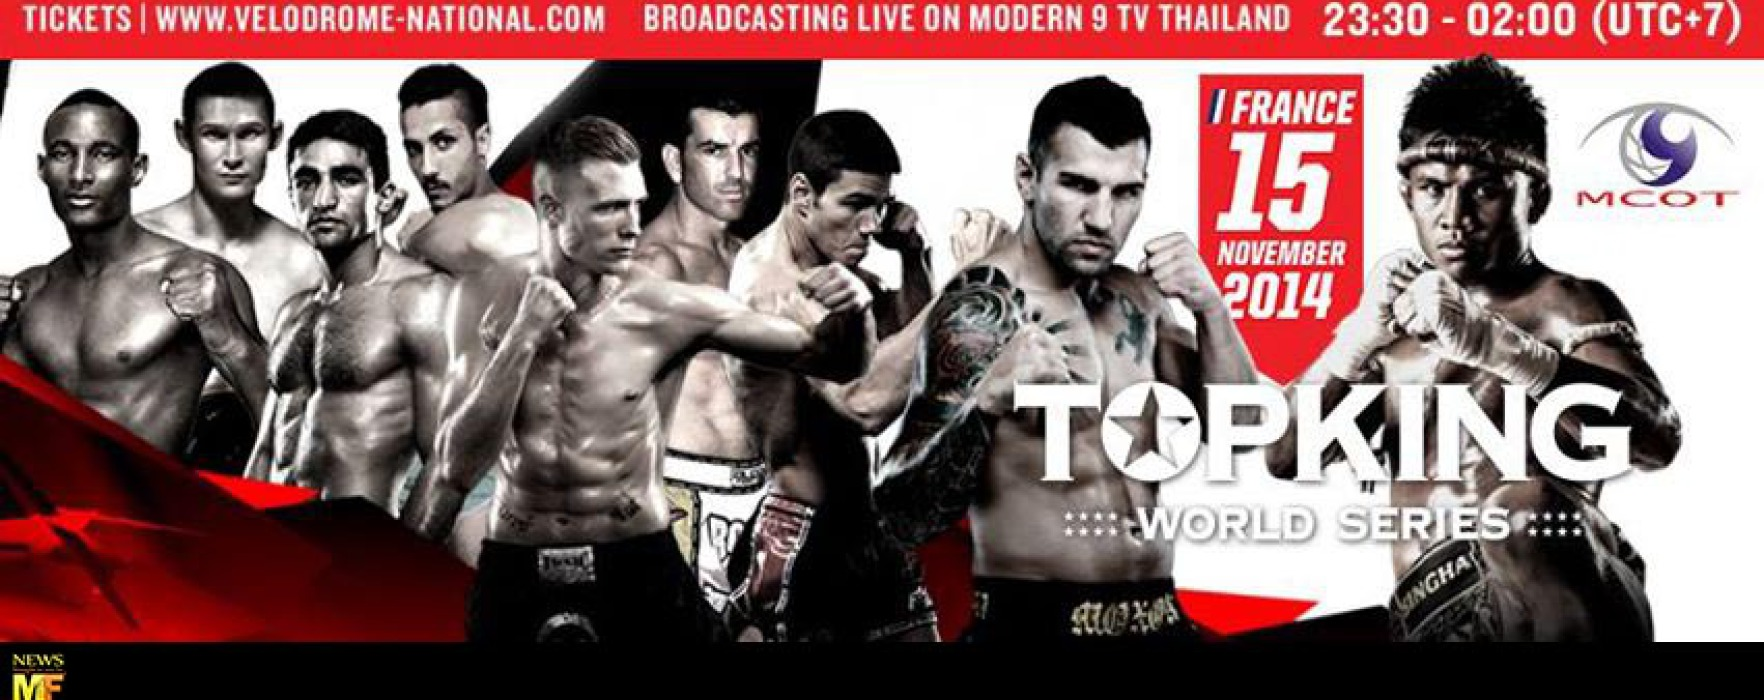 Watch TopKing World Series – Paris in live streaming today 15/11/14 featuring Buakaw, Thongchai, Pakorn ect